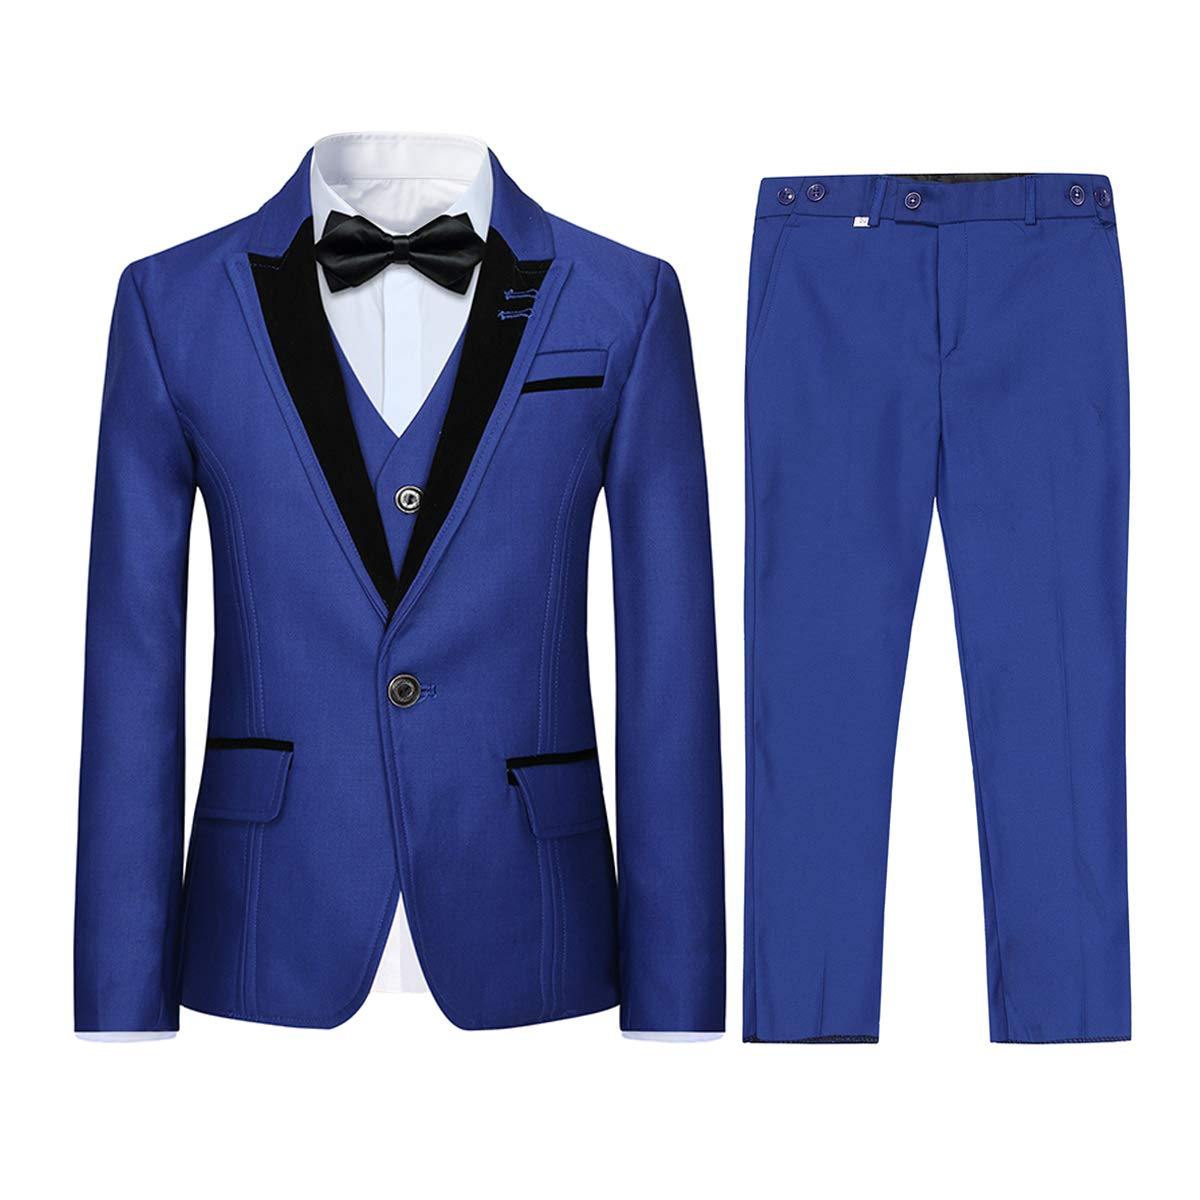 Boyland Boys 10 Pieces Formal Suits Classic Peak Lapel Slim Fit Tux Jacket Vest Pants Birthday Party Wedding Blue